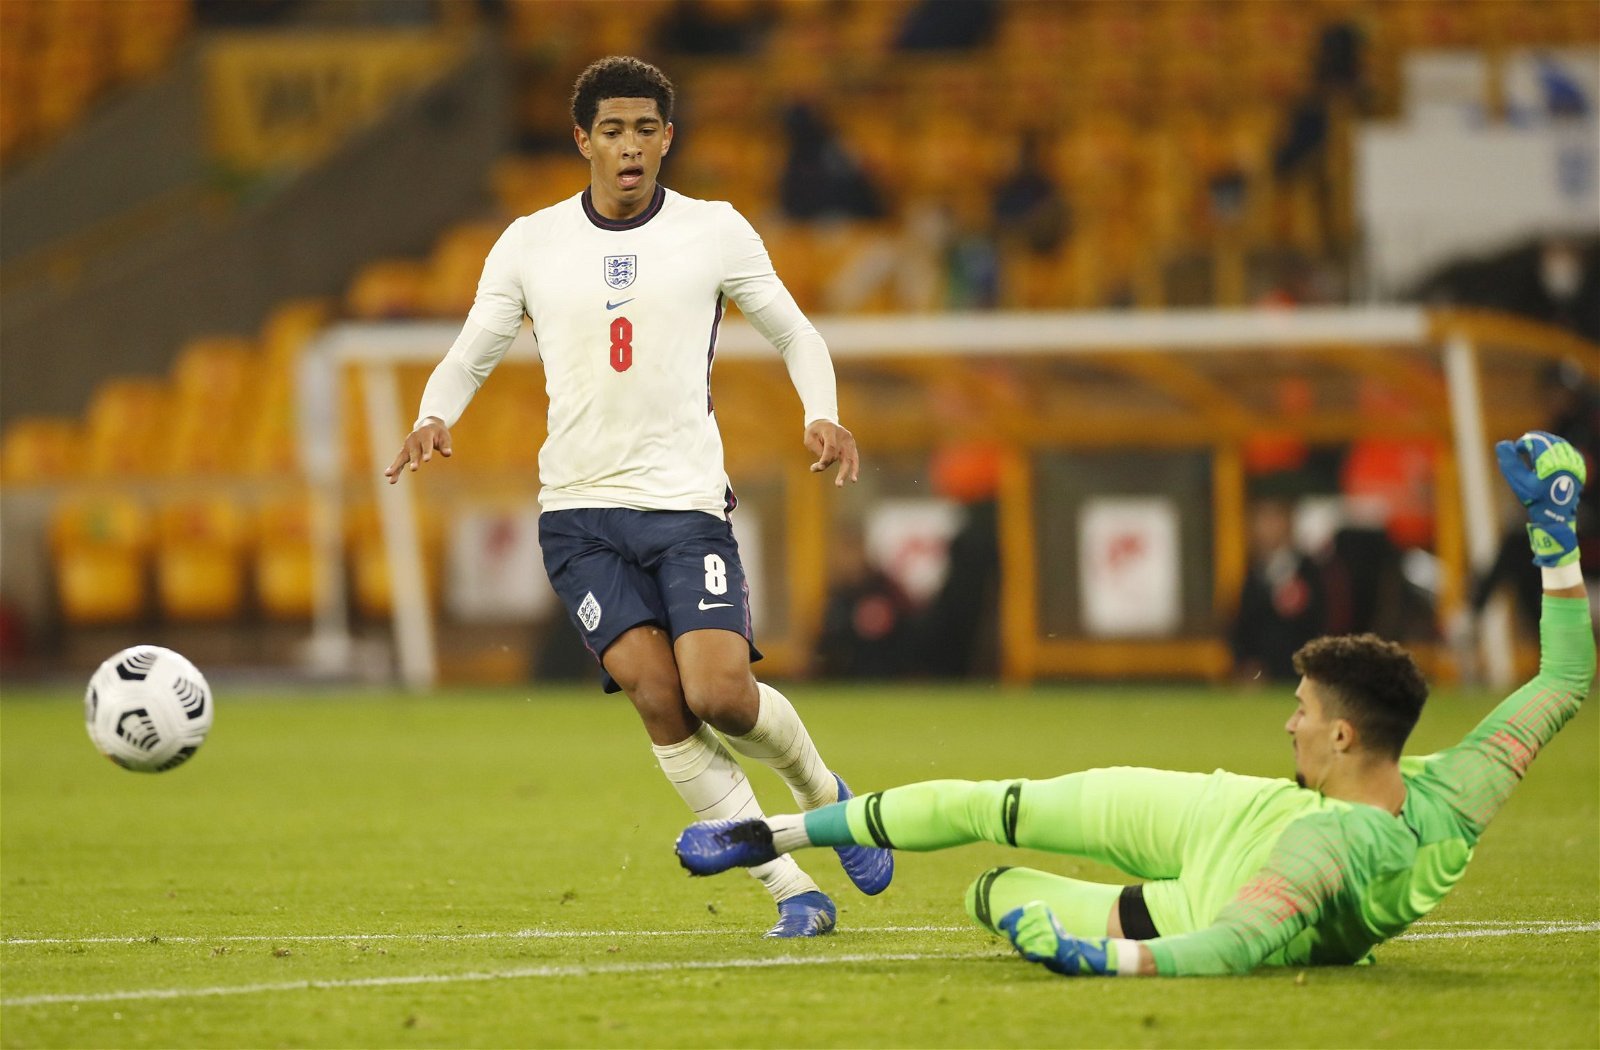 """england u21 jude bellingham vs turkey - Levy disaster: Spurs missed their next Alli in £30m dynamo with """"enormous potential"""" - opinion"""